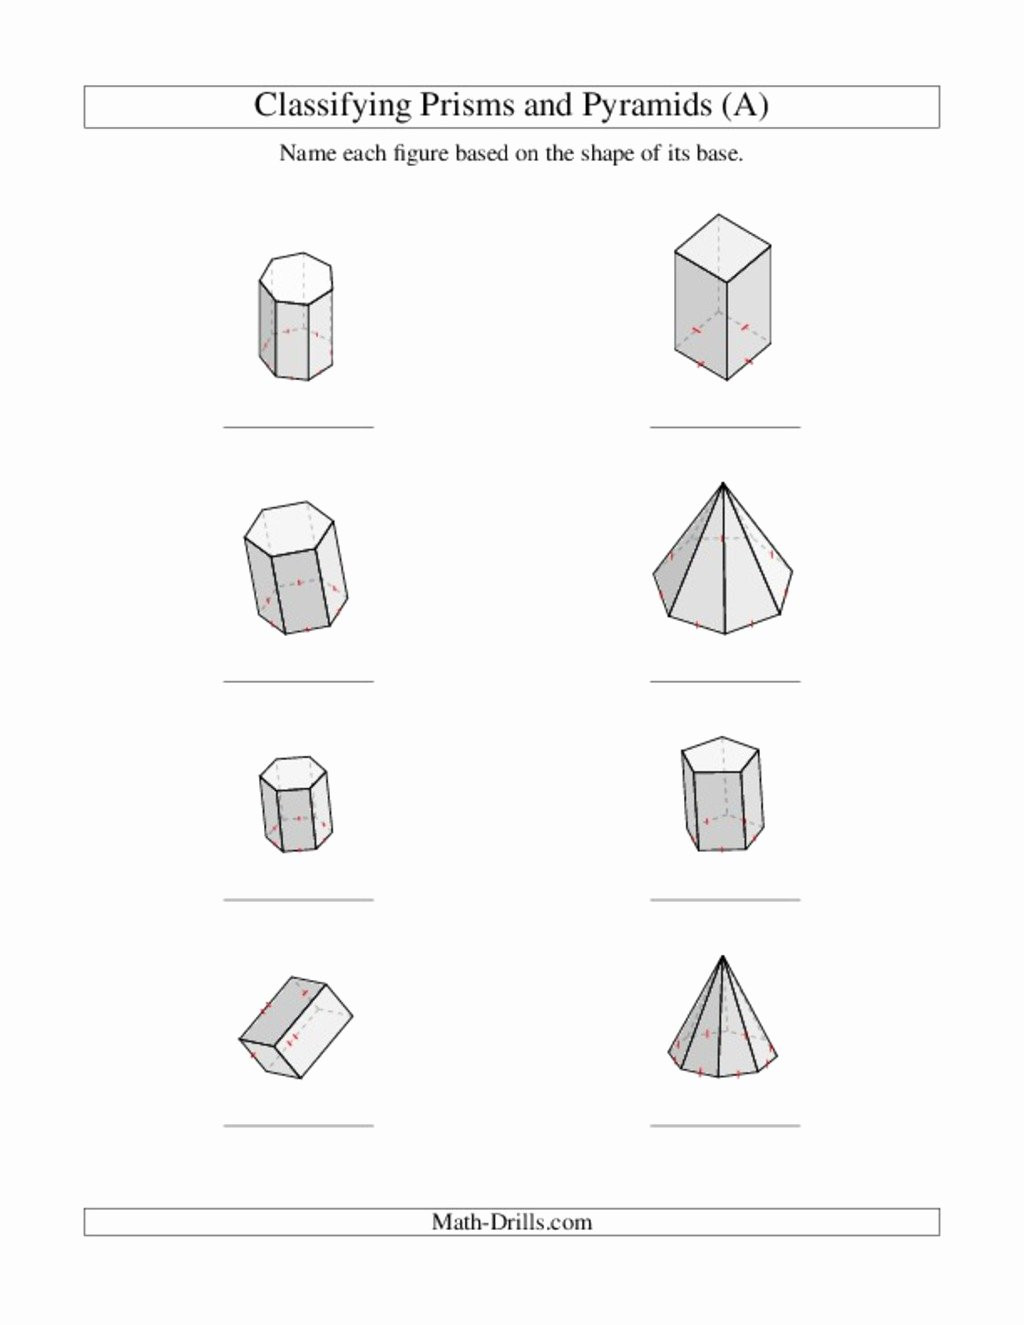 Cross Sections Worksheet 7th Grade Fresh solid Figures